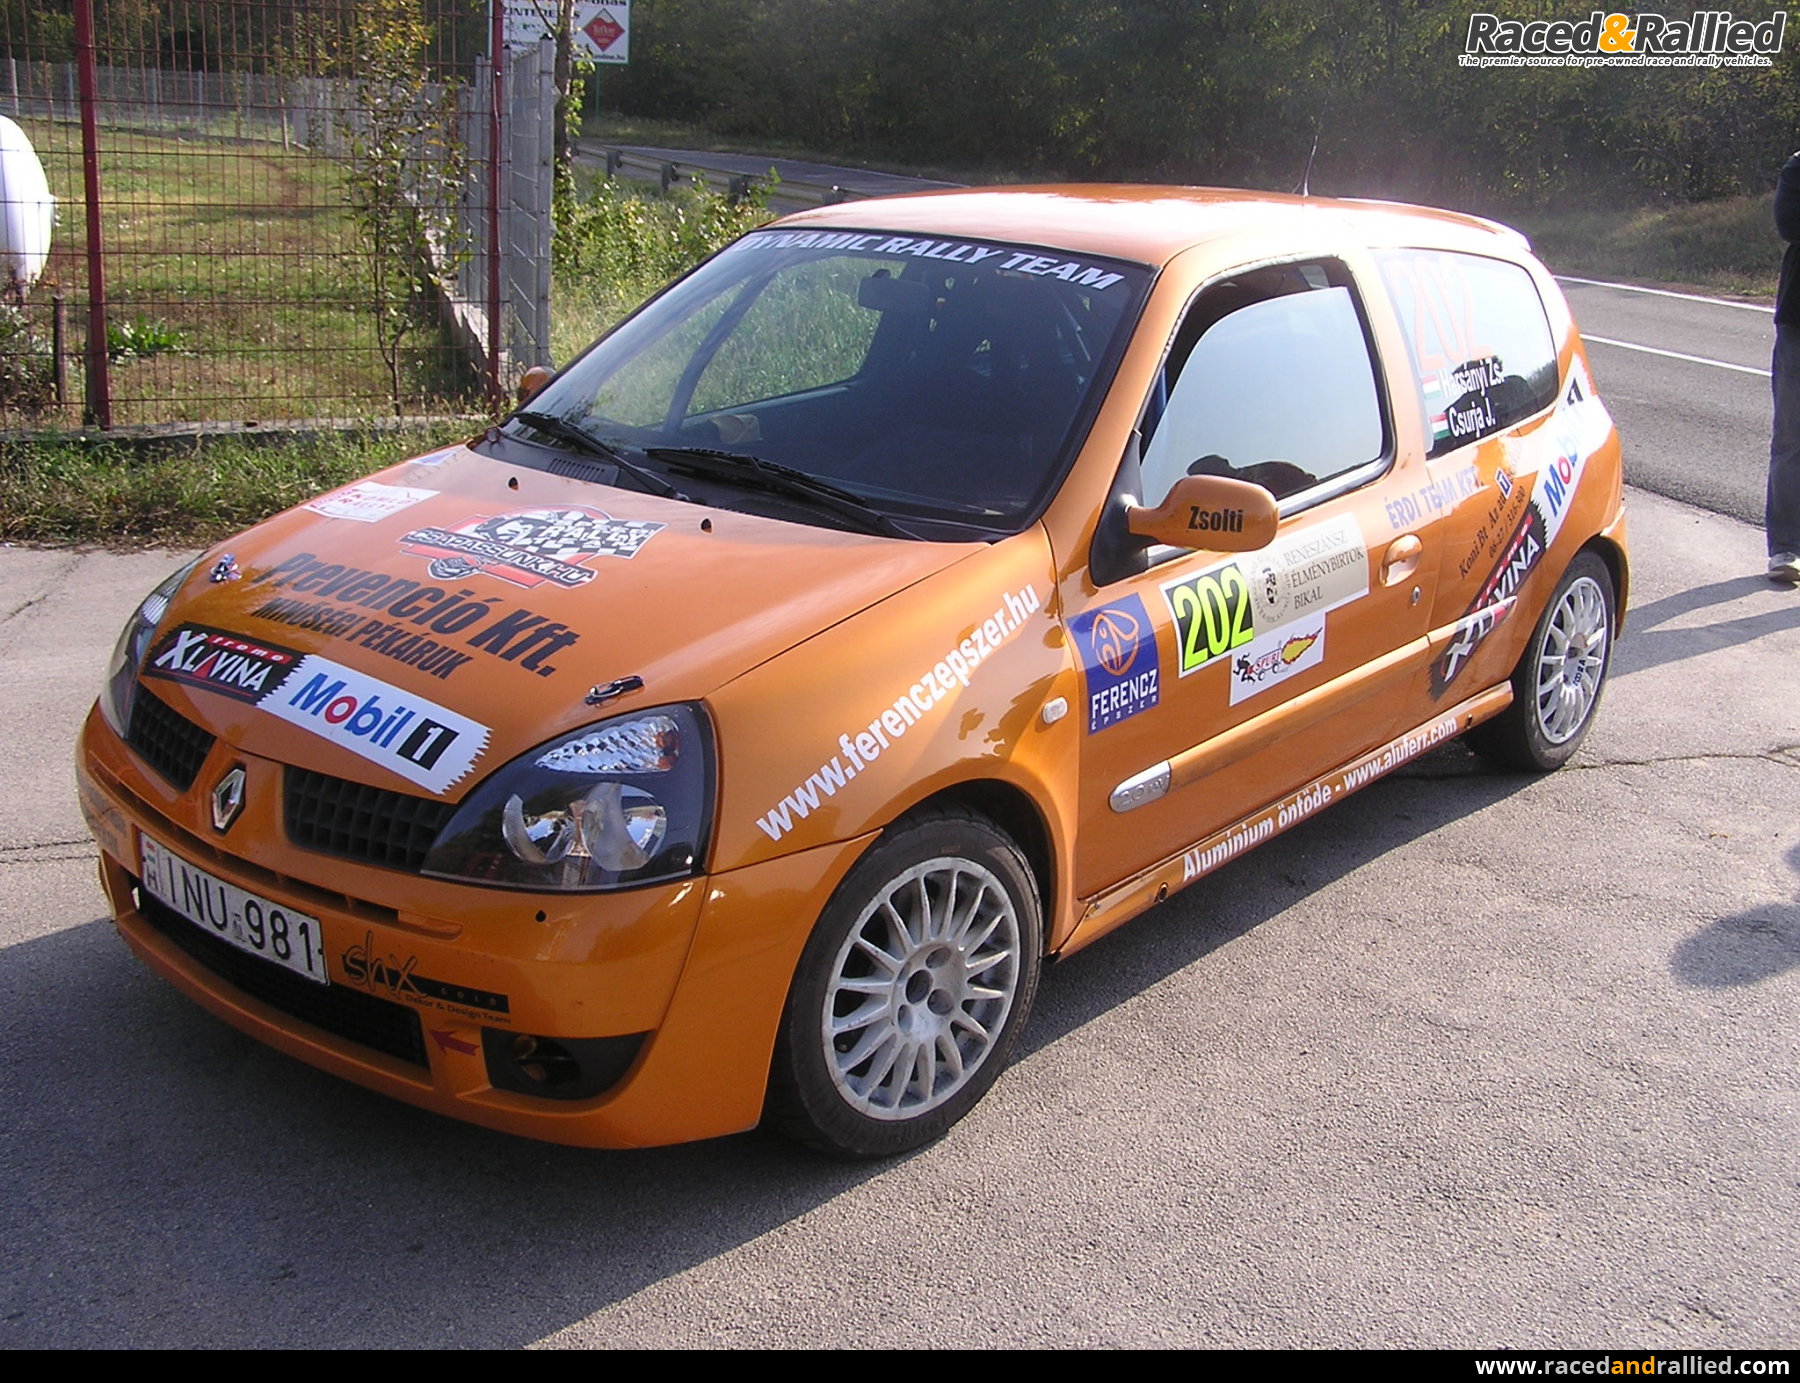 renault clio rs gra rally cars for sale at raced rallied rally cars for sale race cars. Black Bedroom Furniture Sets. Home Design Ideas